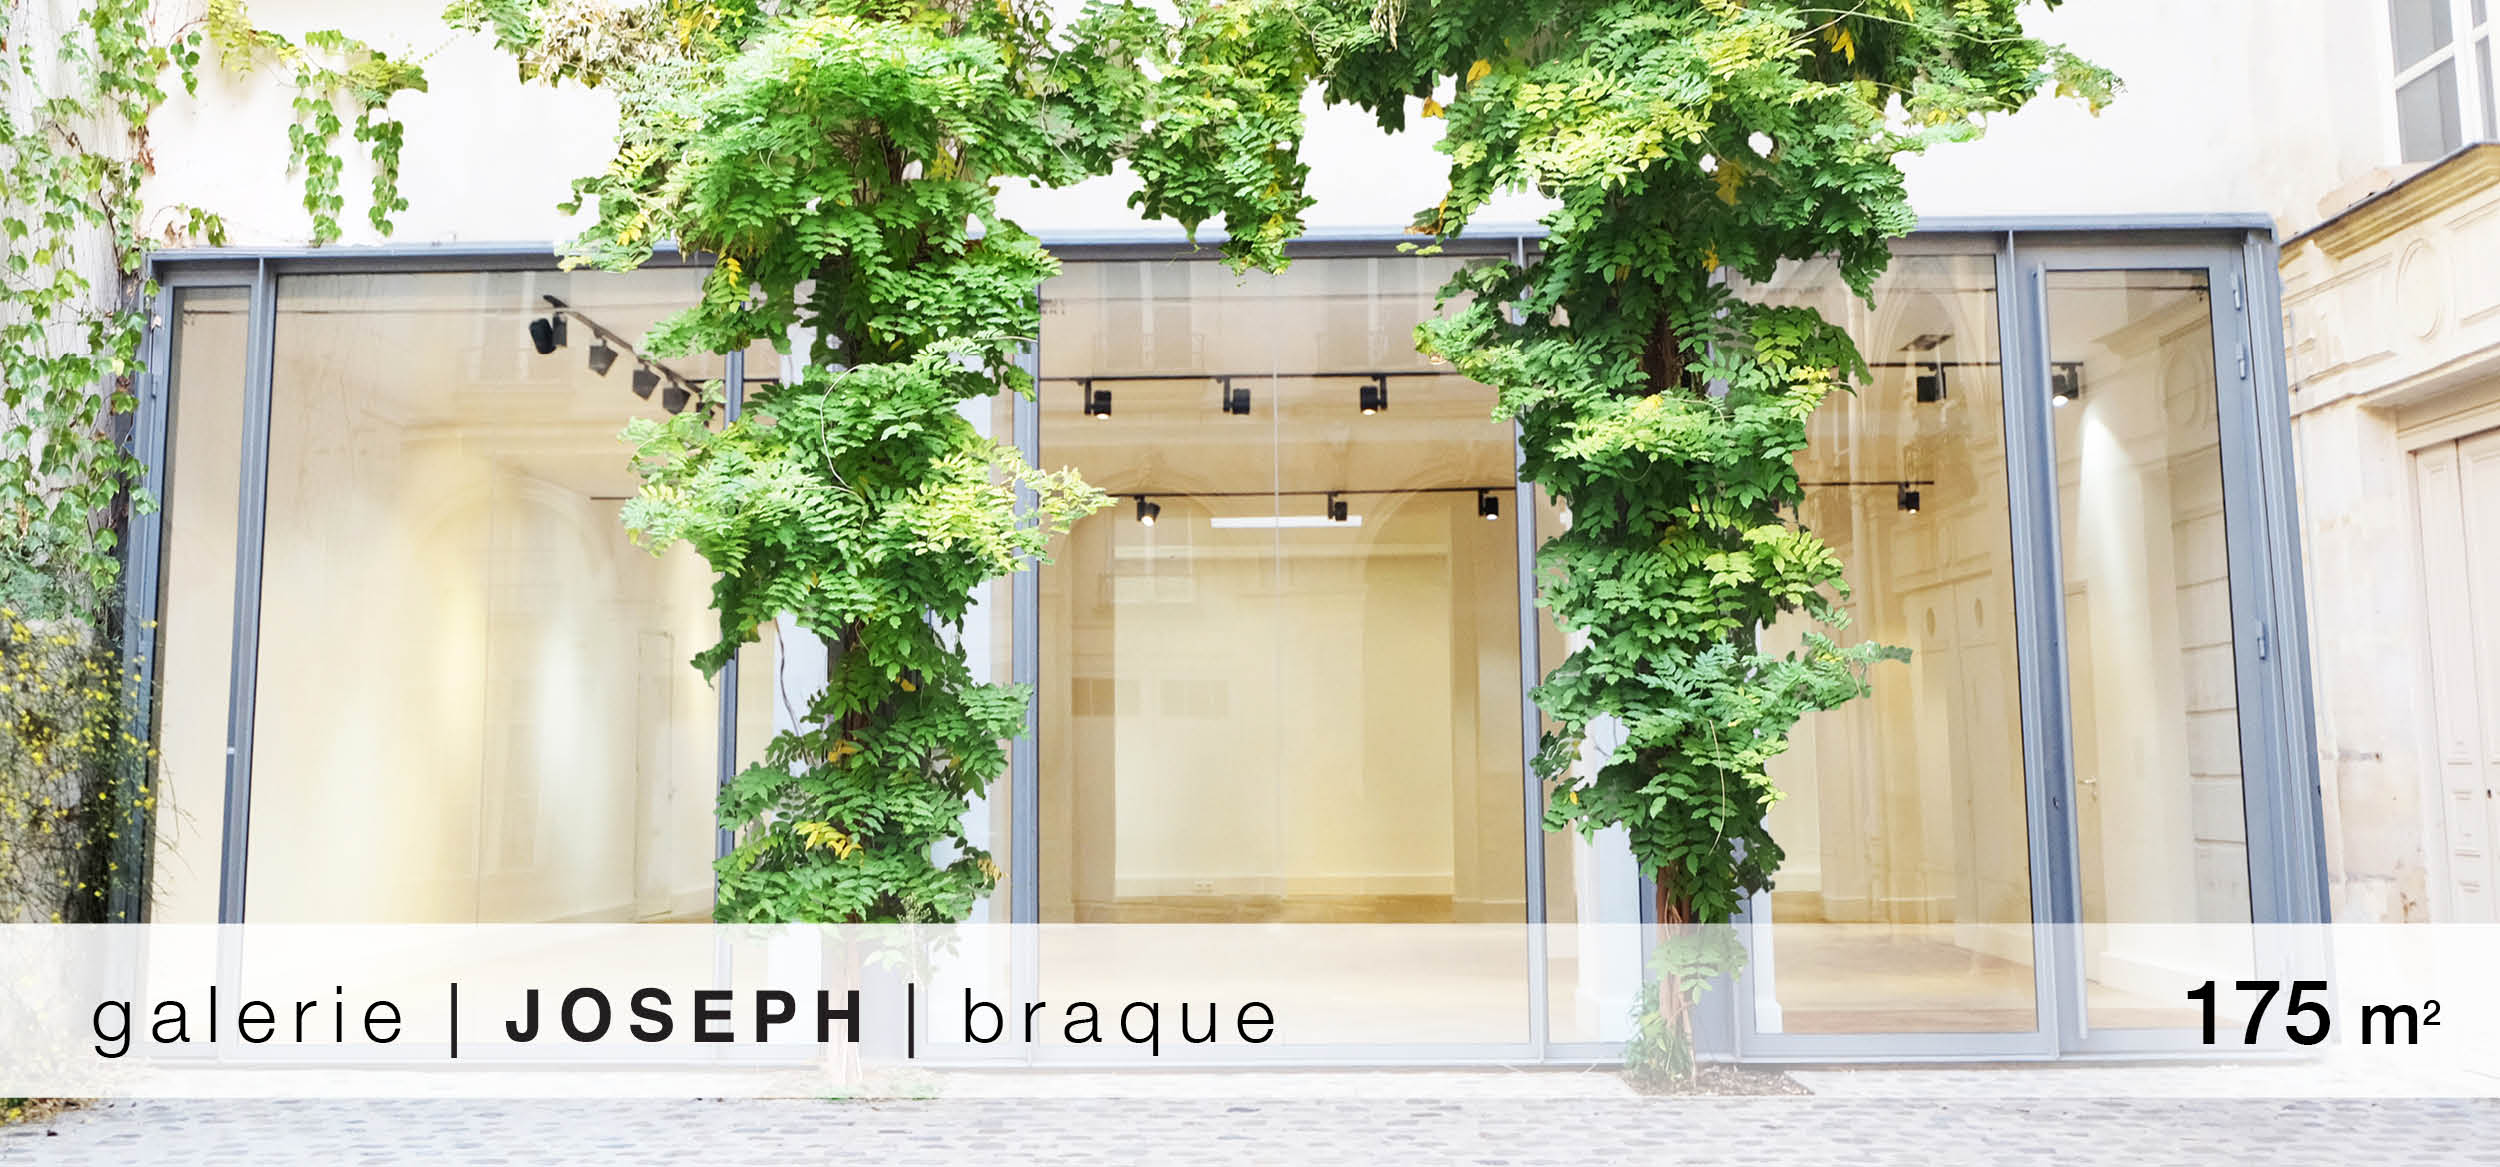 Galerie Joseph Braque location showroom Braque